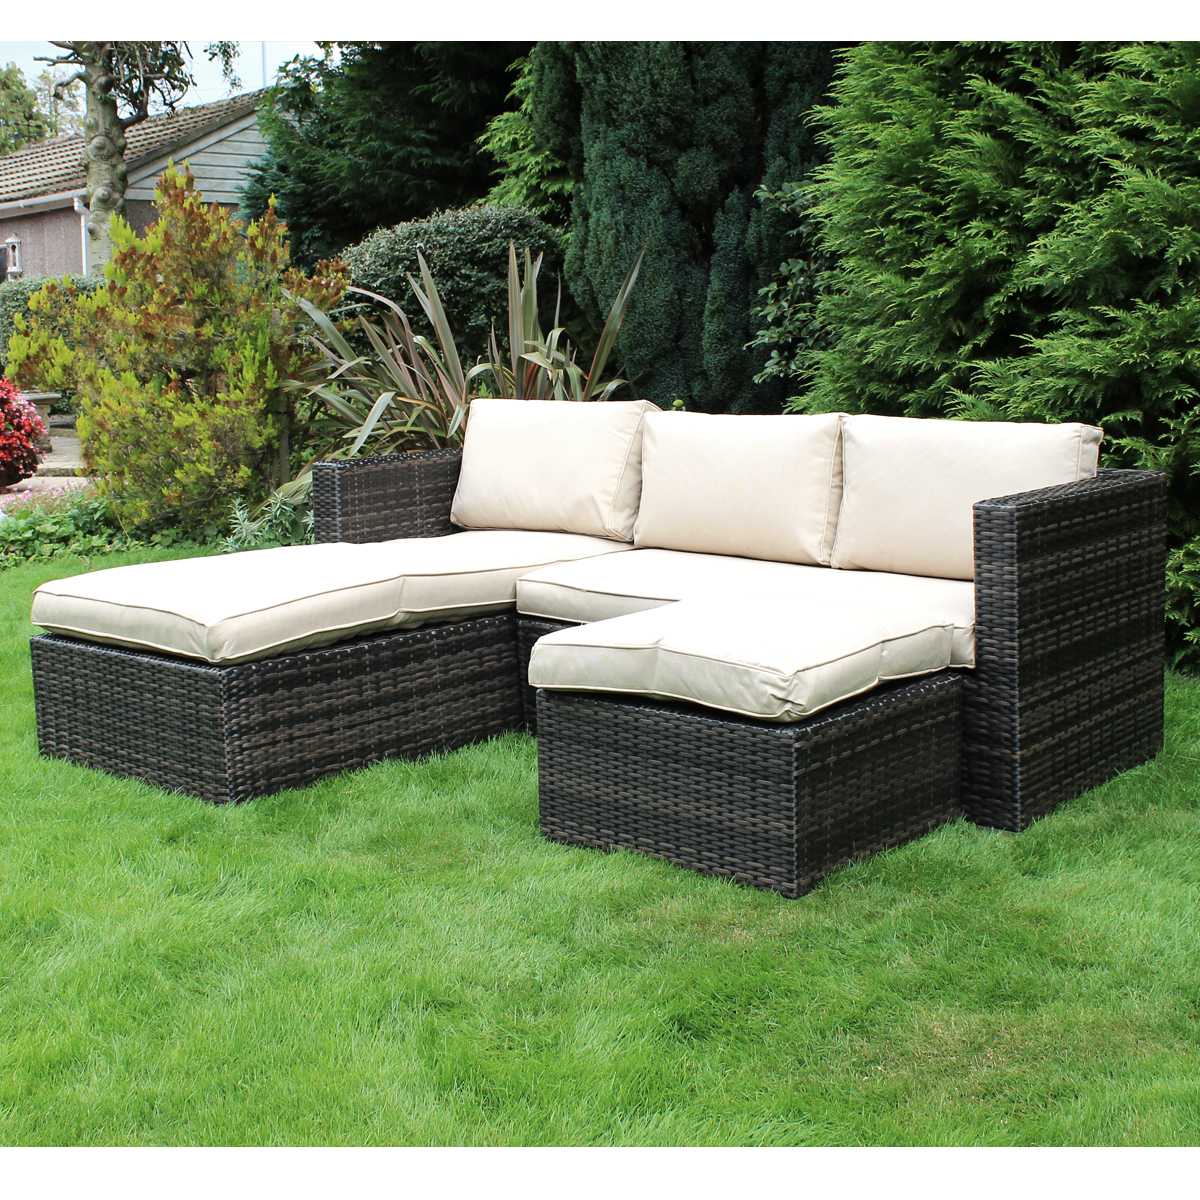 L Shaped Rattan Garden Sofa Charles Bentley Garden L Shaped Rattan Corner Sofa Outdoor